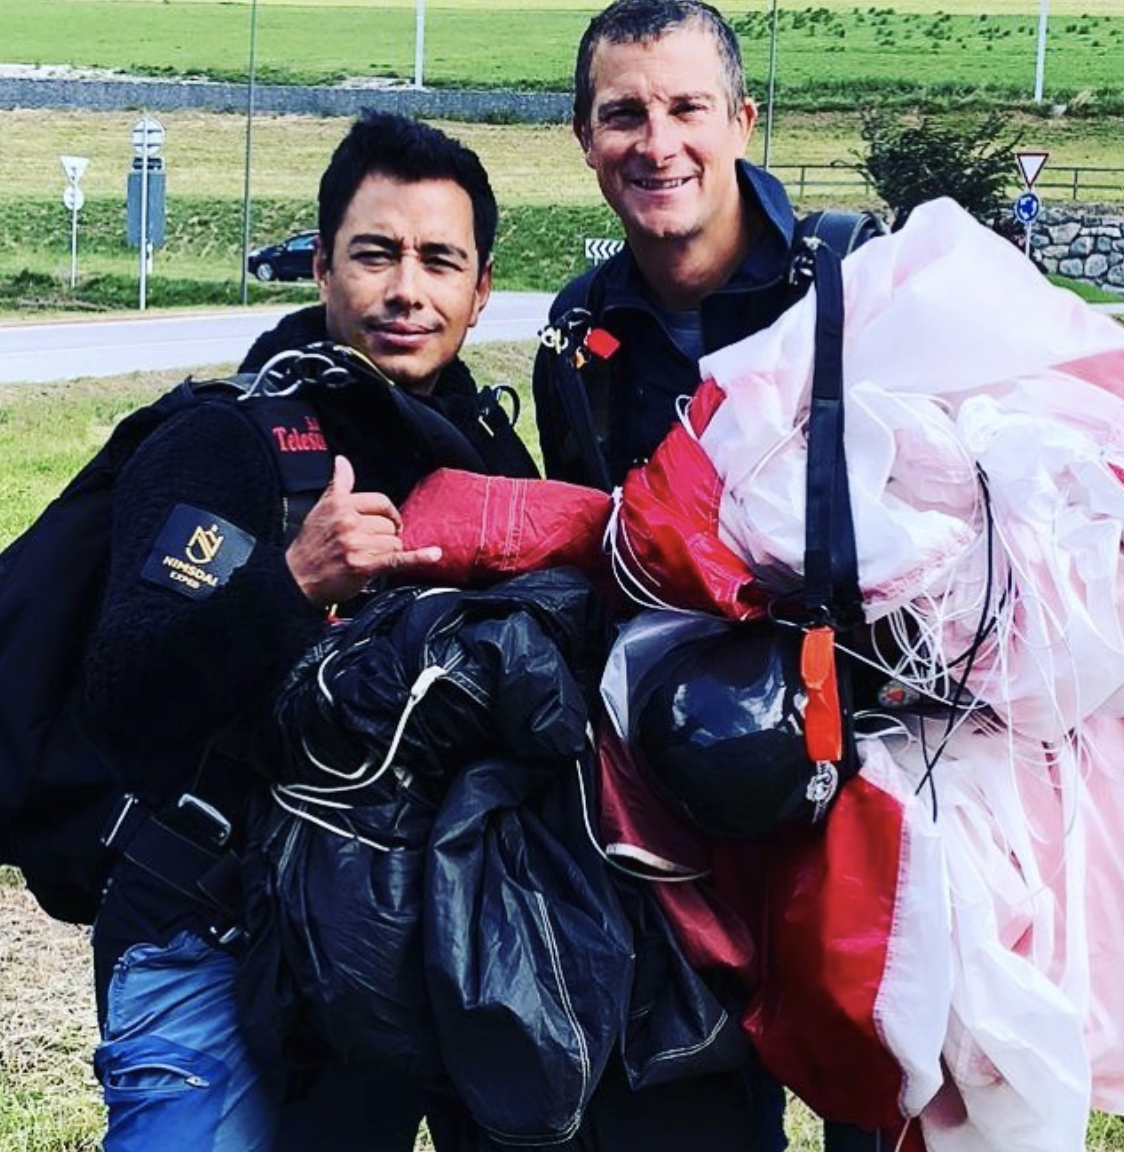 Adventure Reality Star Bear Grylls with parachute after skydiving